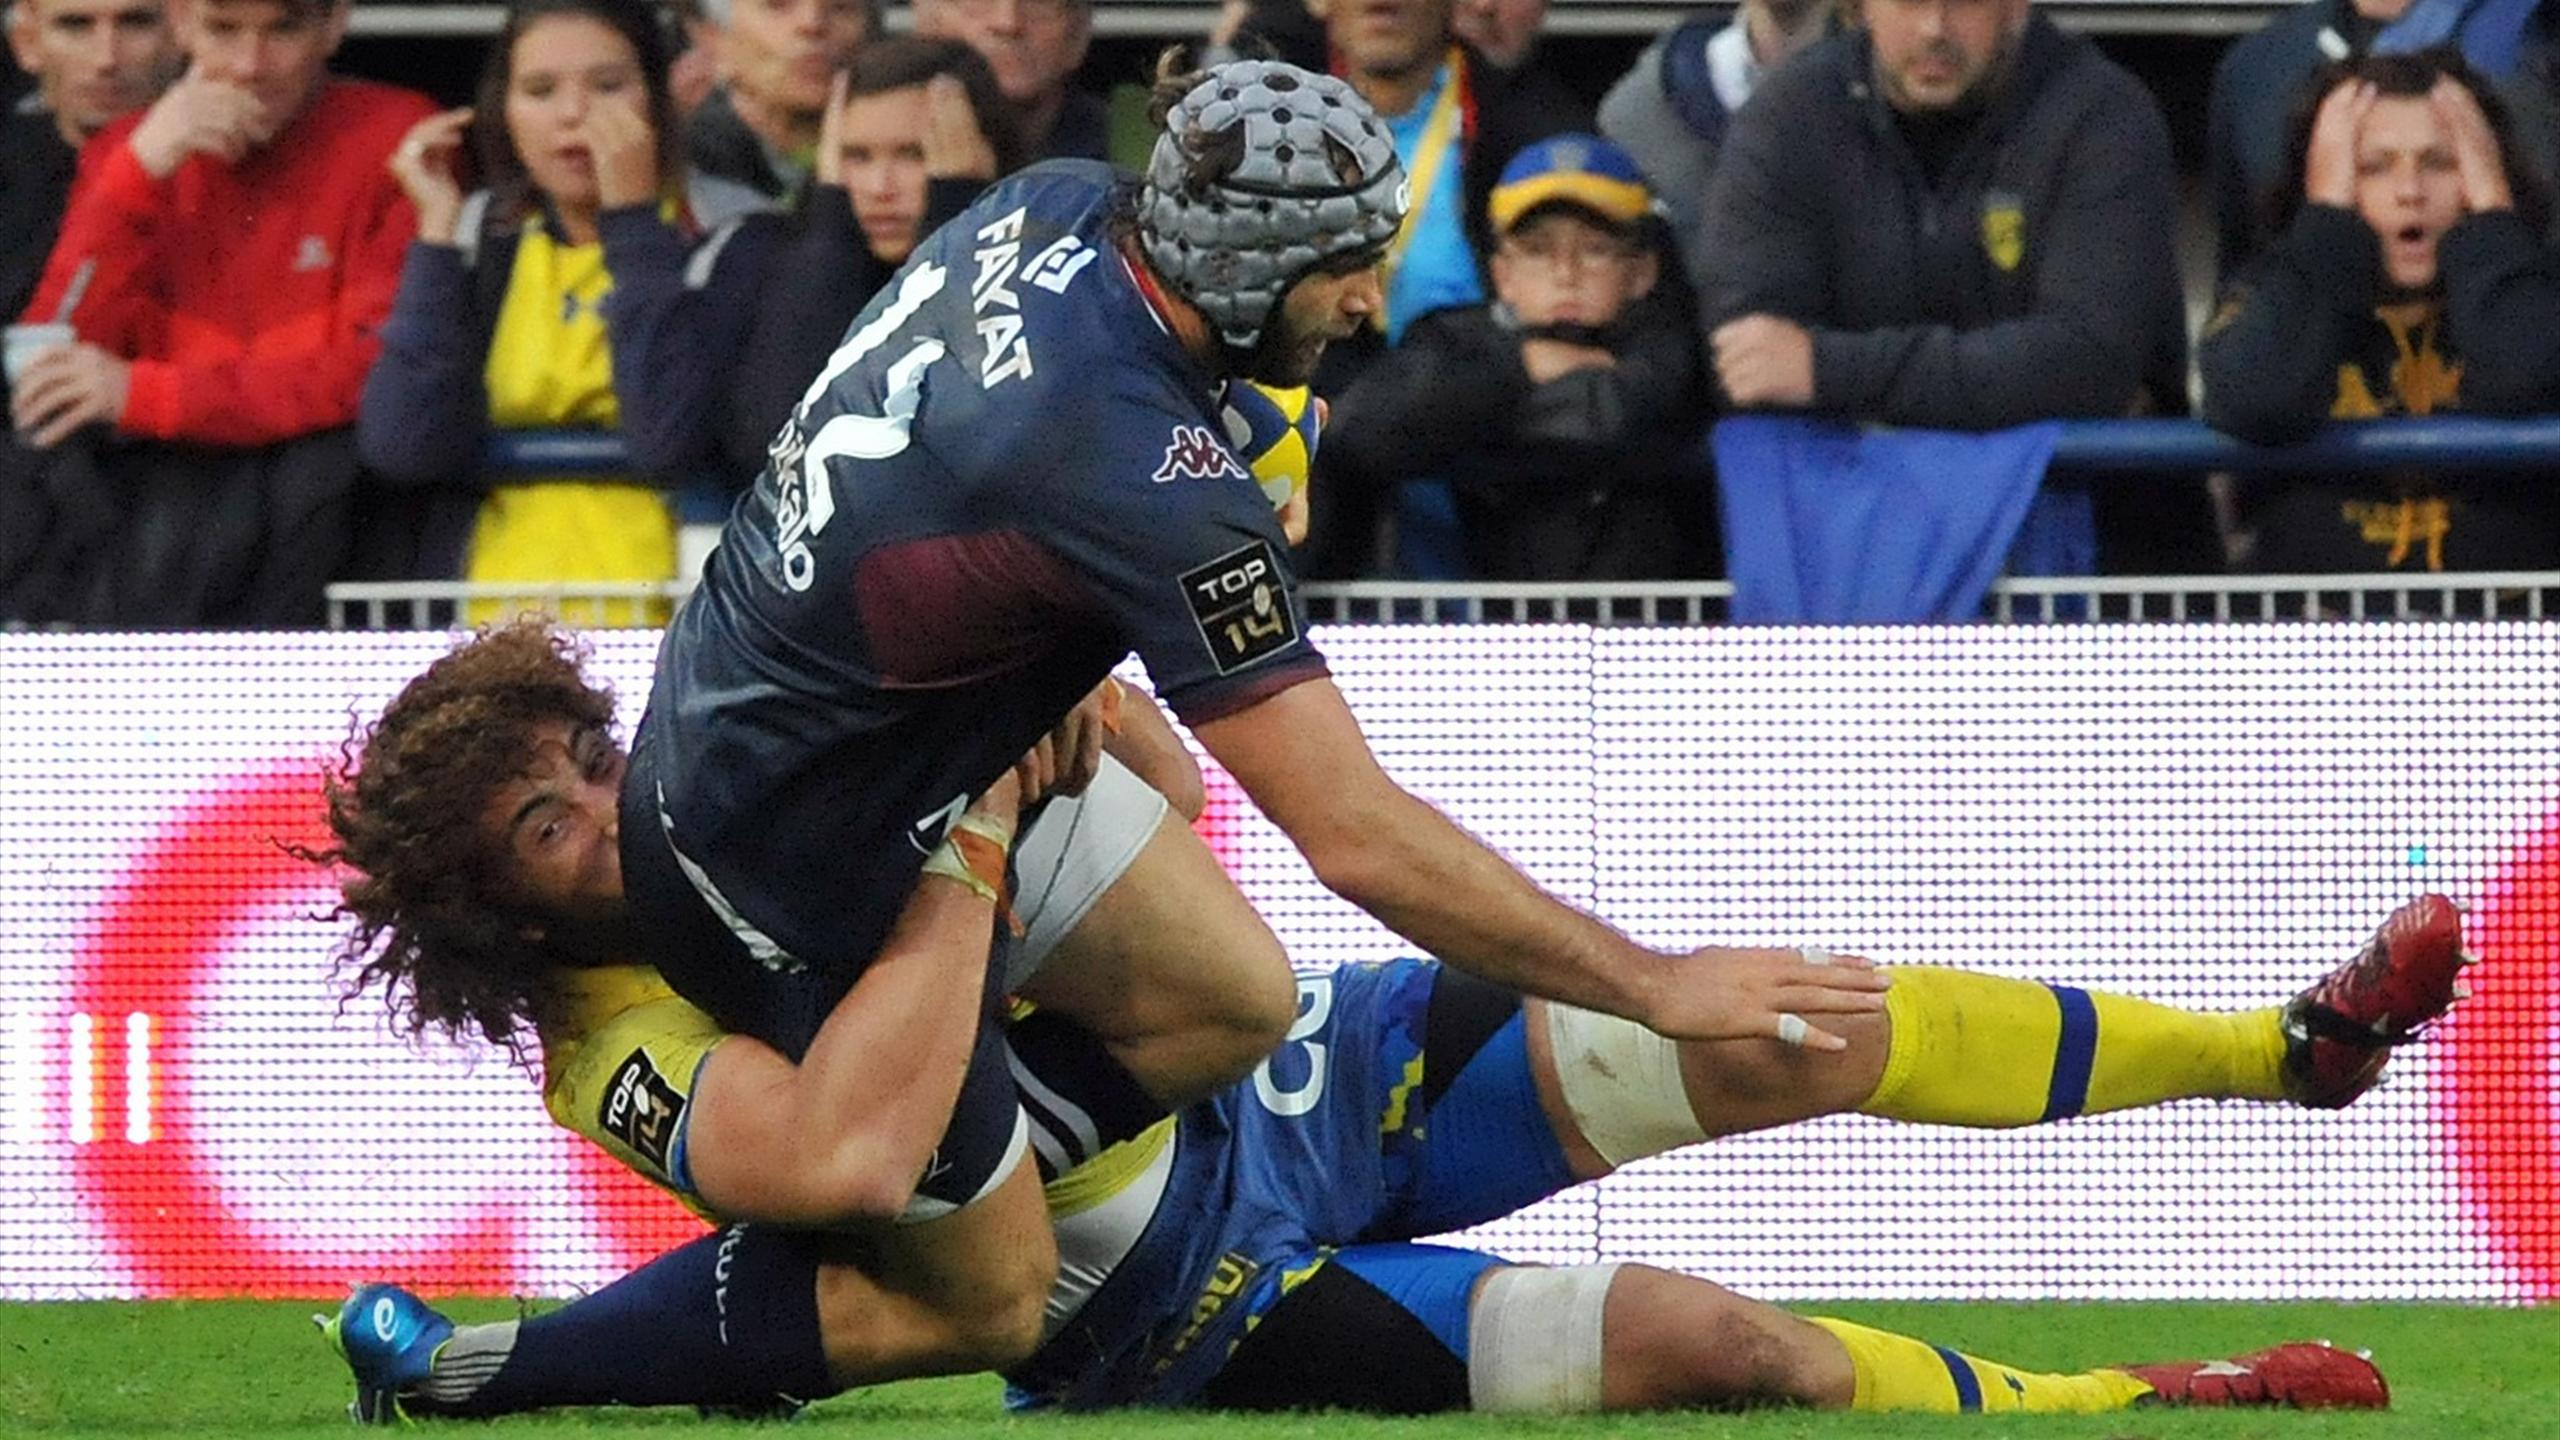 Julien Rey (Bordeaux-Bègles) face à Clermont - 12 septembre 2015